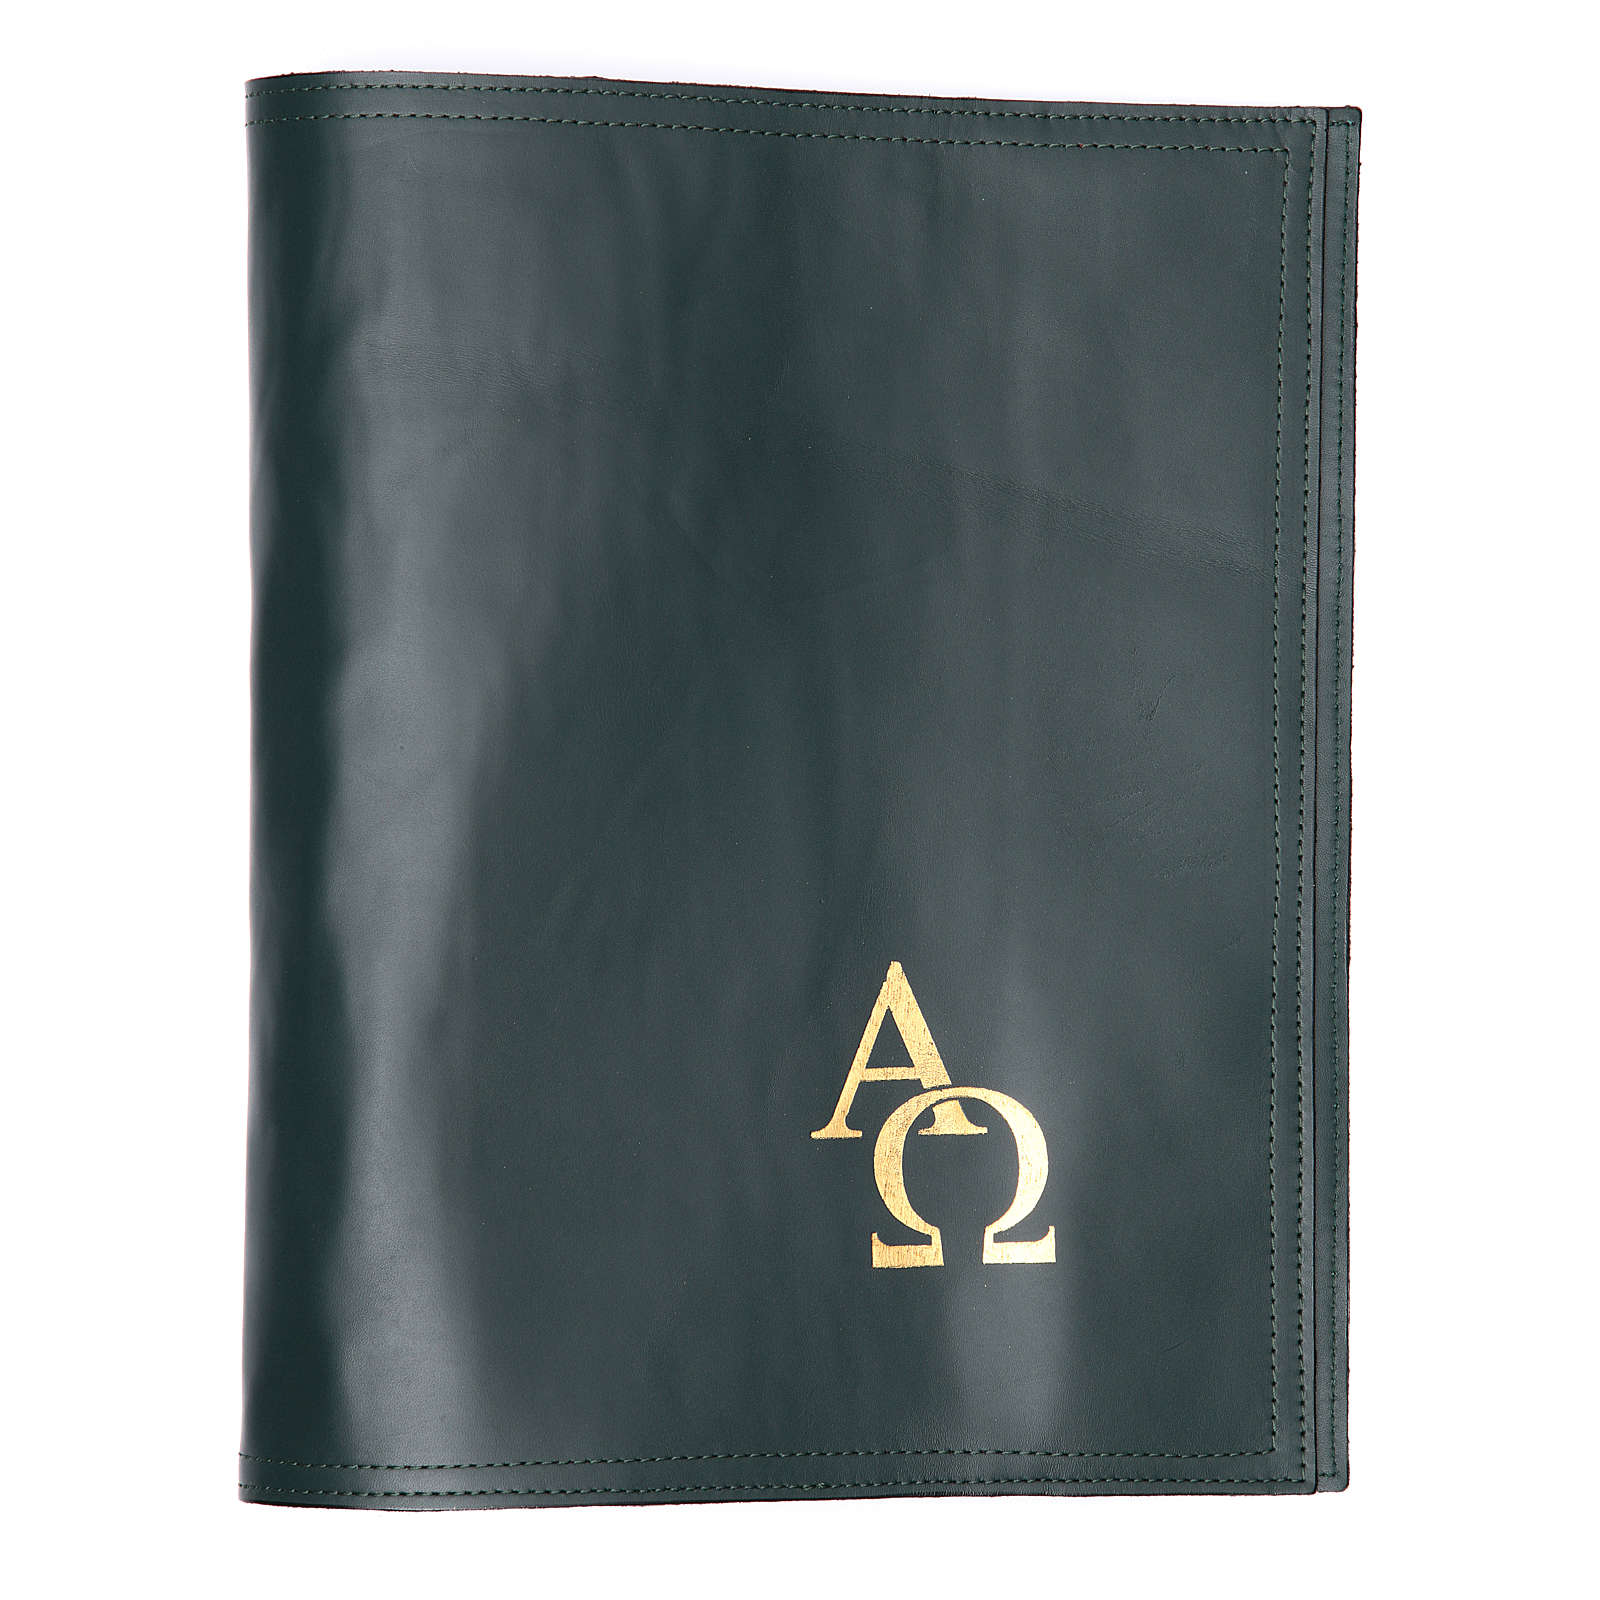 Cover fo benedictional in leather with alpha and omega, green 4